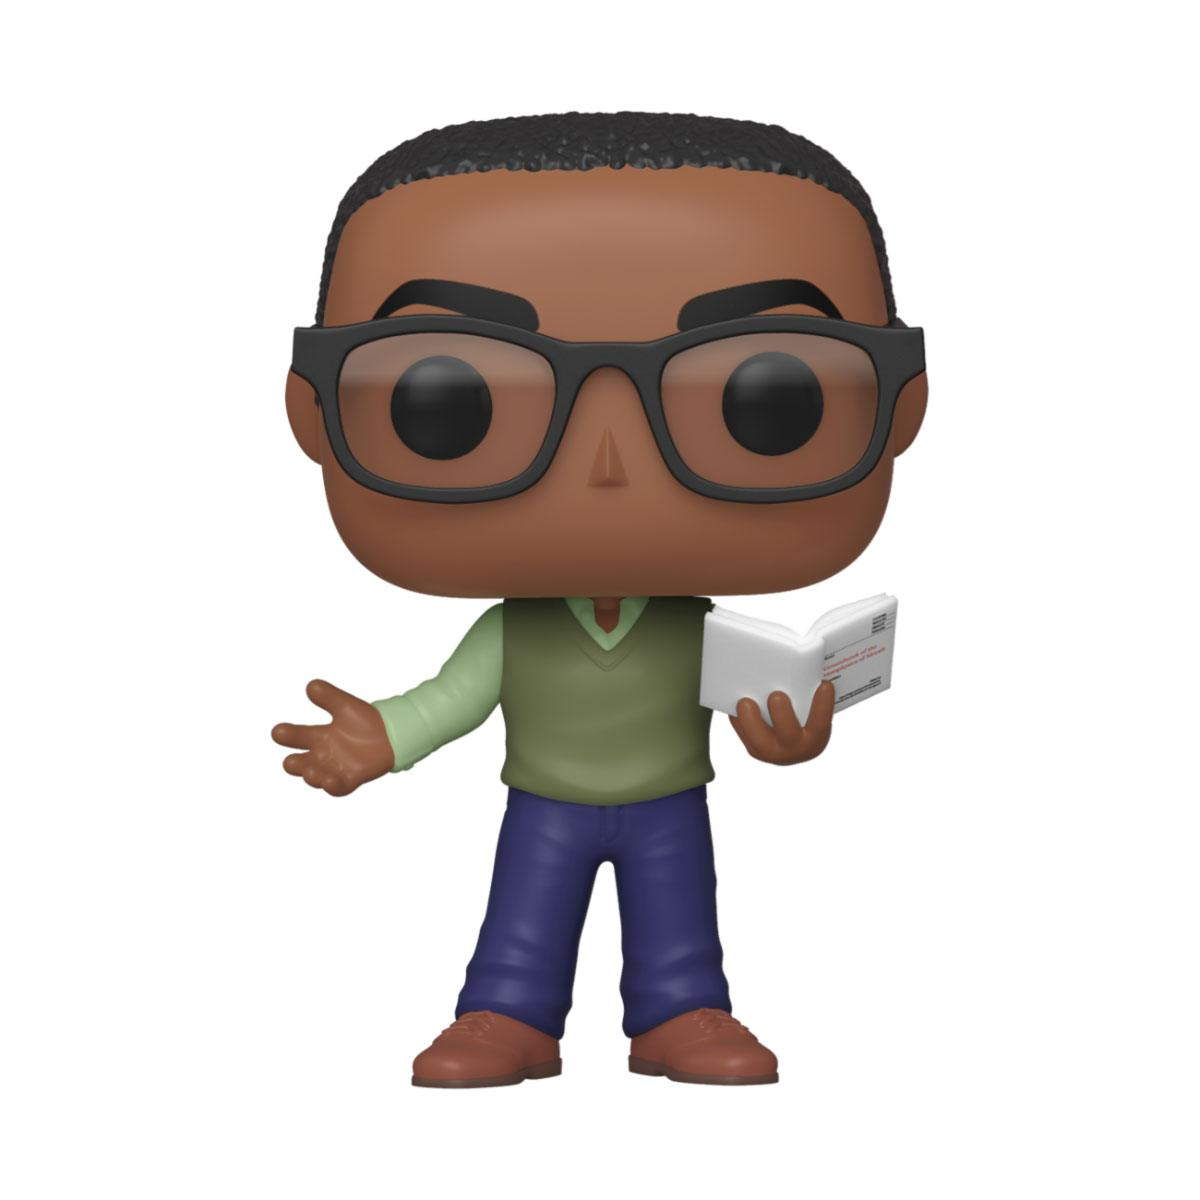 The Good Place POP! TV Vinyl Figurine Chidi Anagonye 9 cm